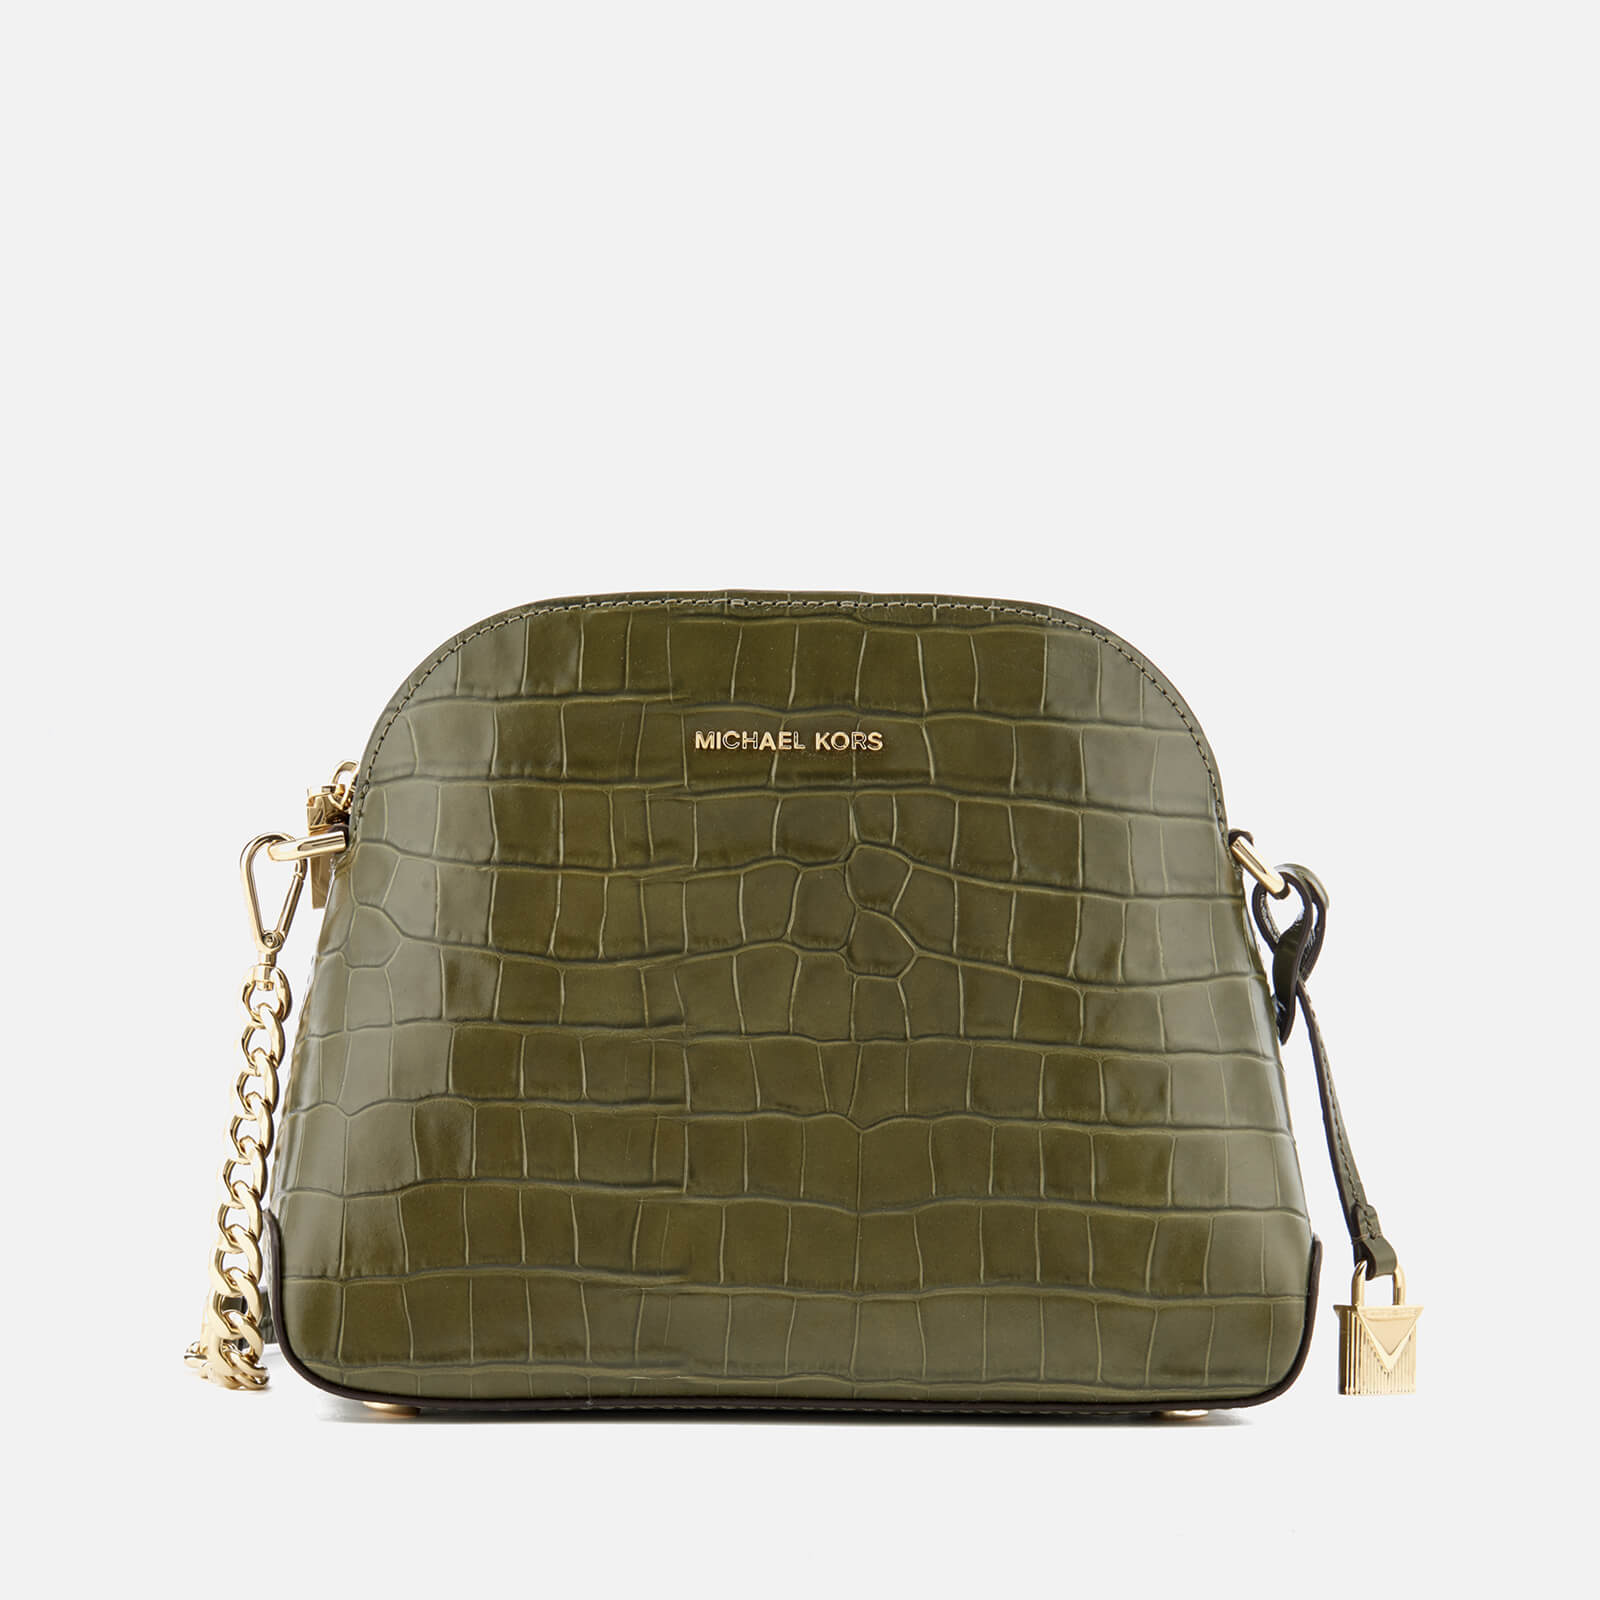 6b19bf5f4d2151 MICHAEL MICHAEL KORS Women's Mercer Medium Dome Cross Body Satchel - Olive  - Free UK Delivery over £50